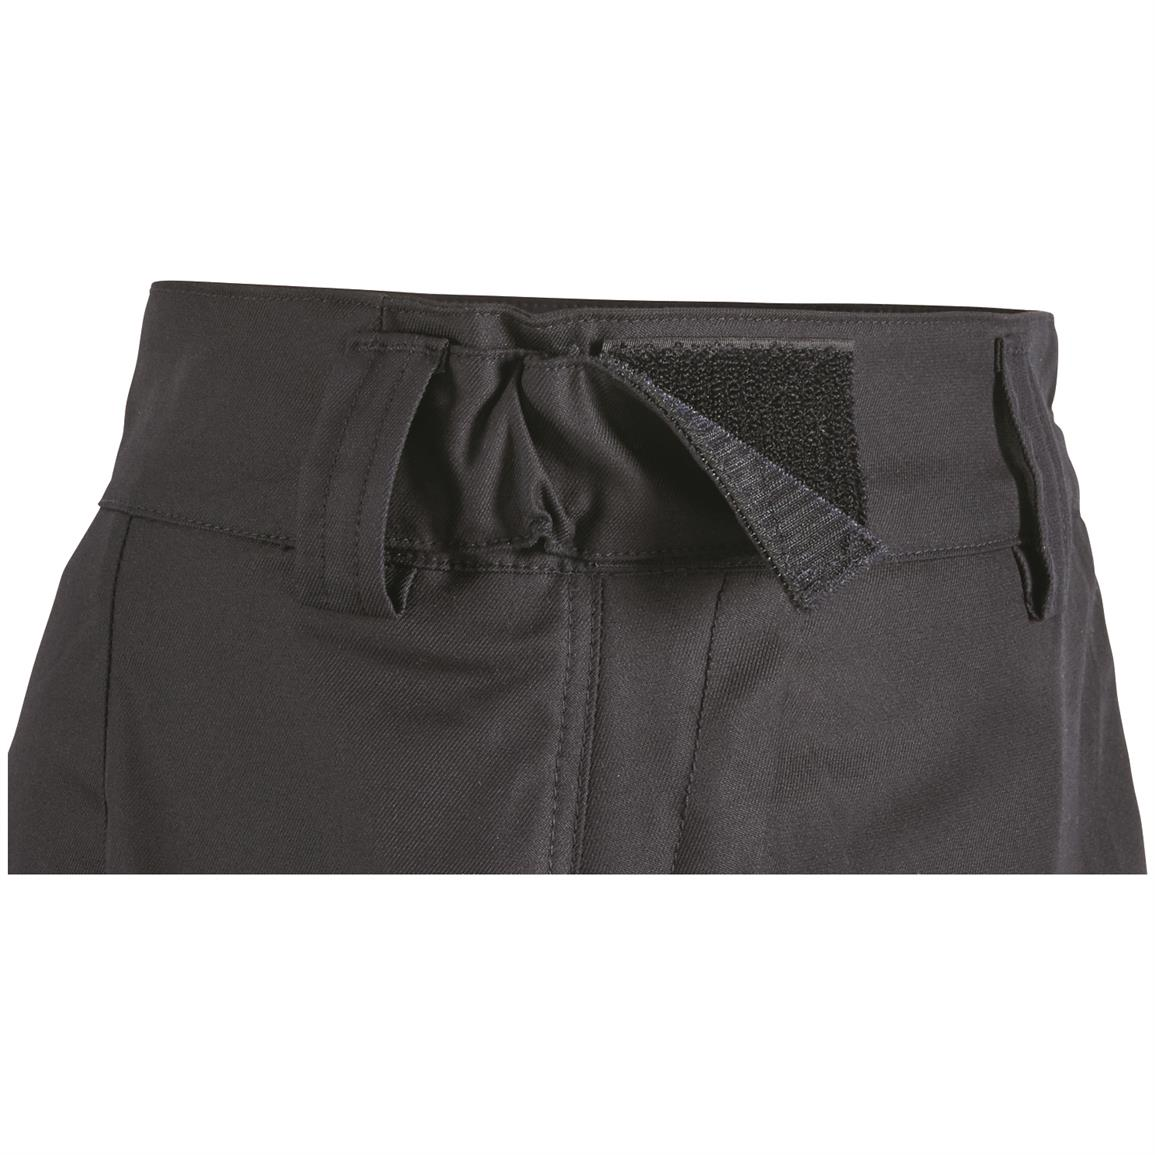 Elastic side waist adjusters with hook and loop panel